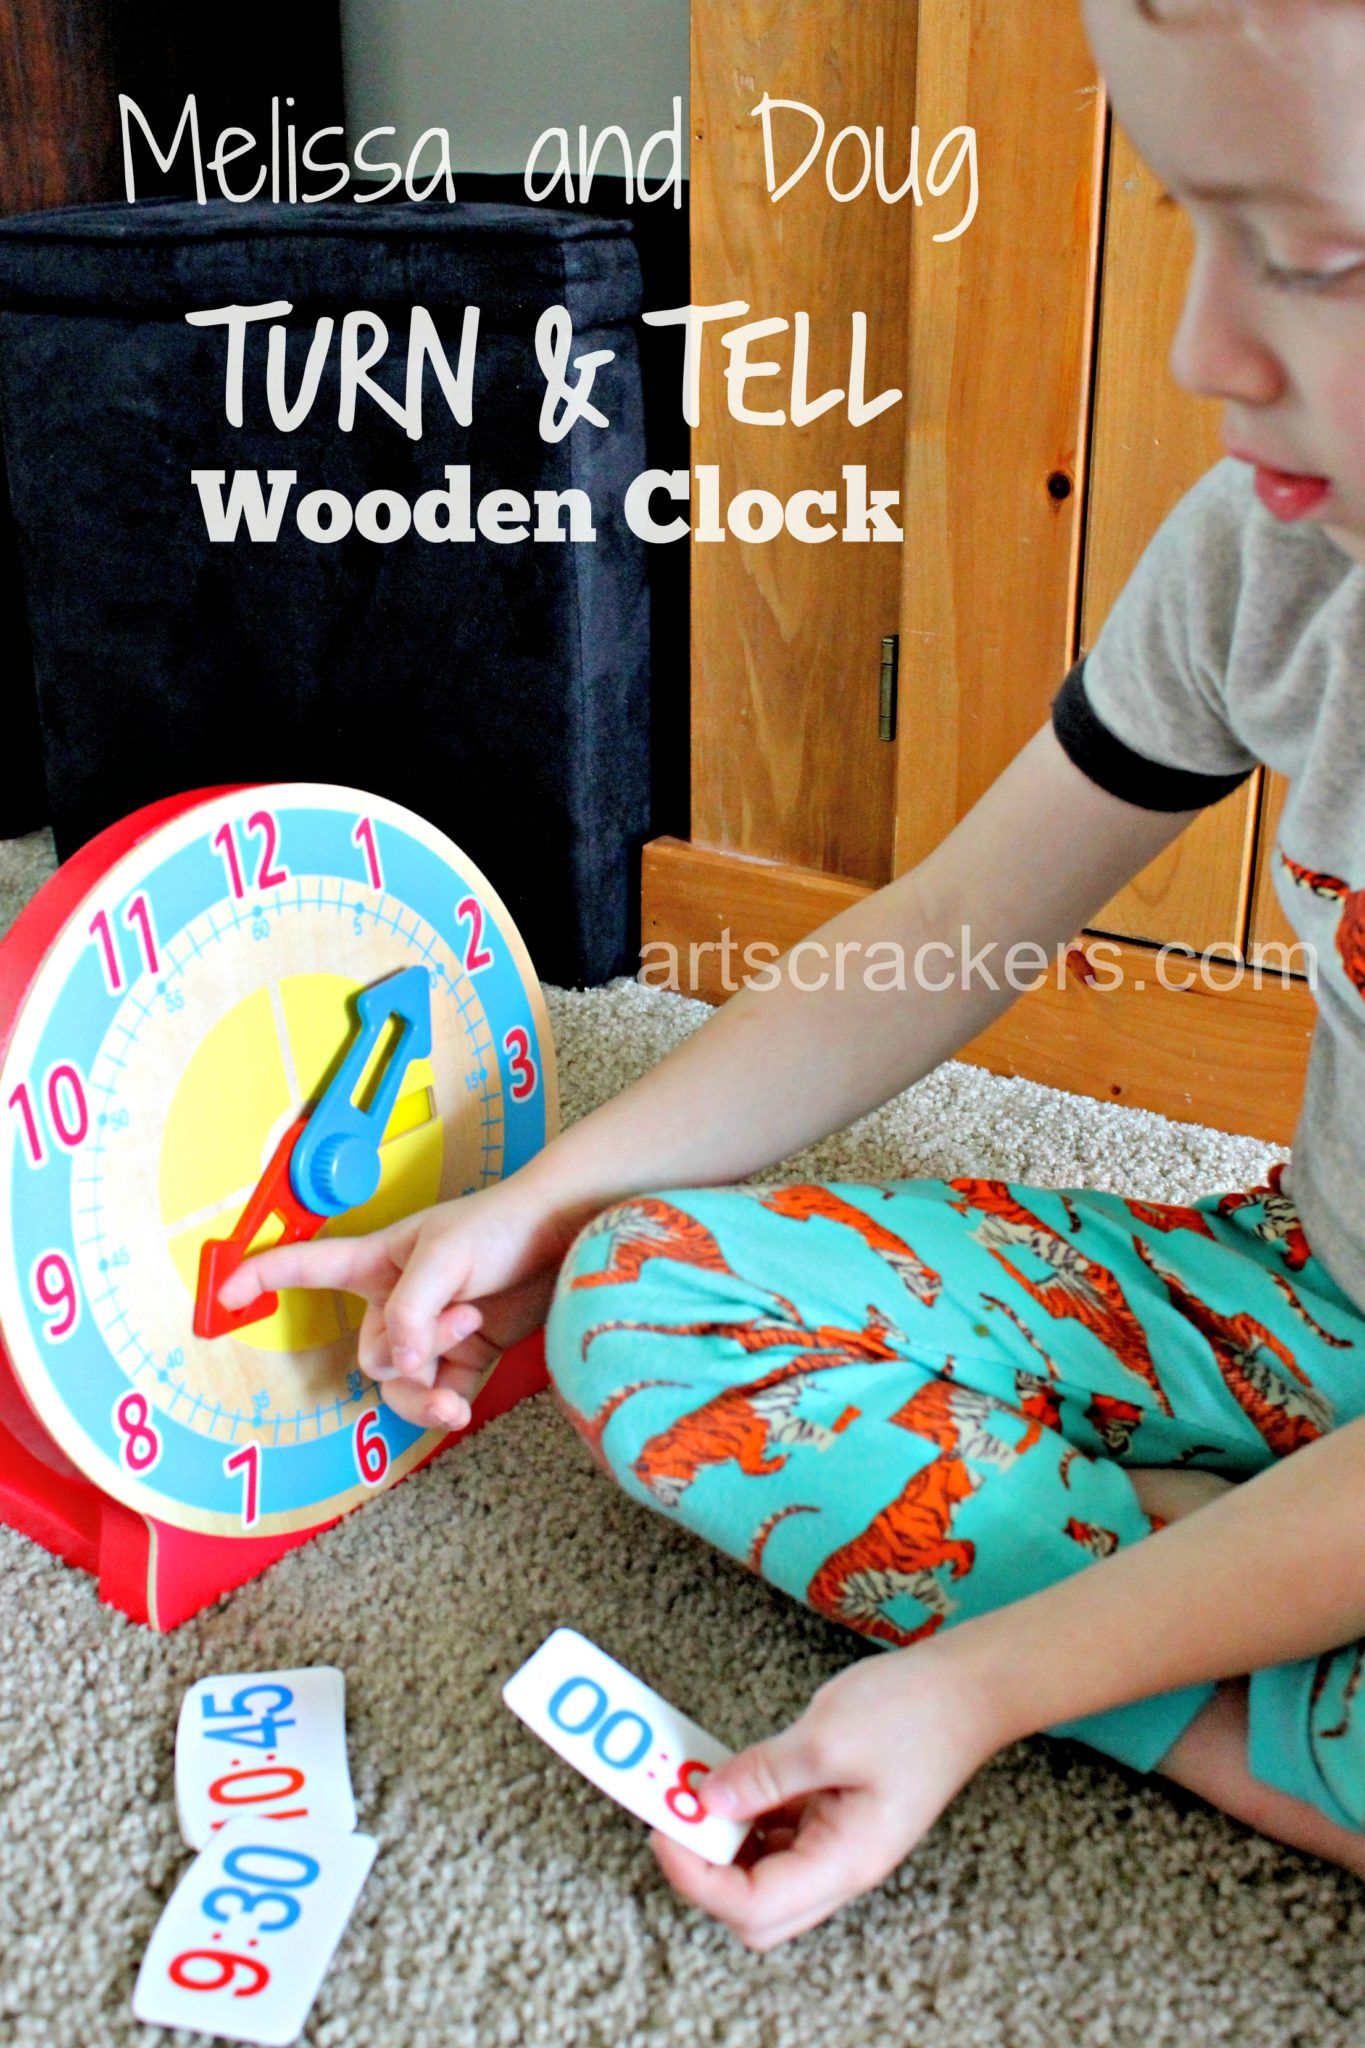 Melissa and Doug Turn & Tell Wooden Clock. Click the picture to read the review.